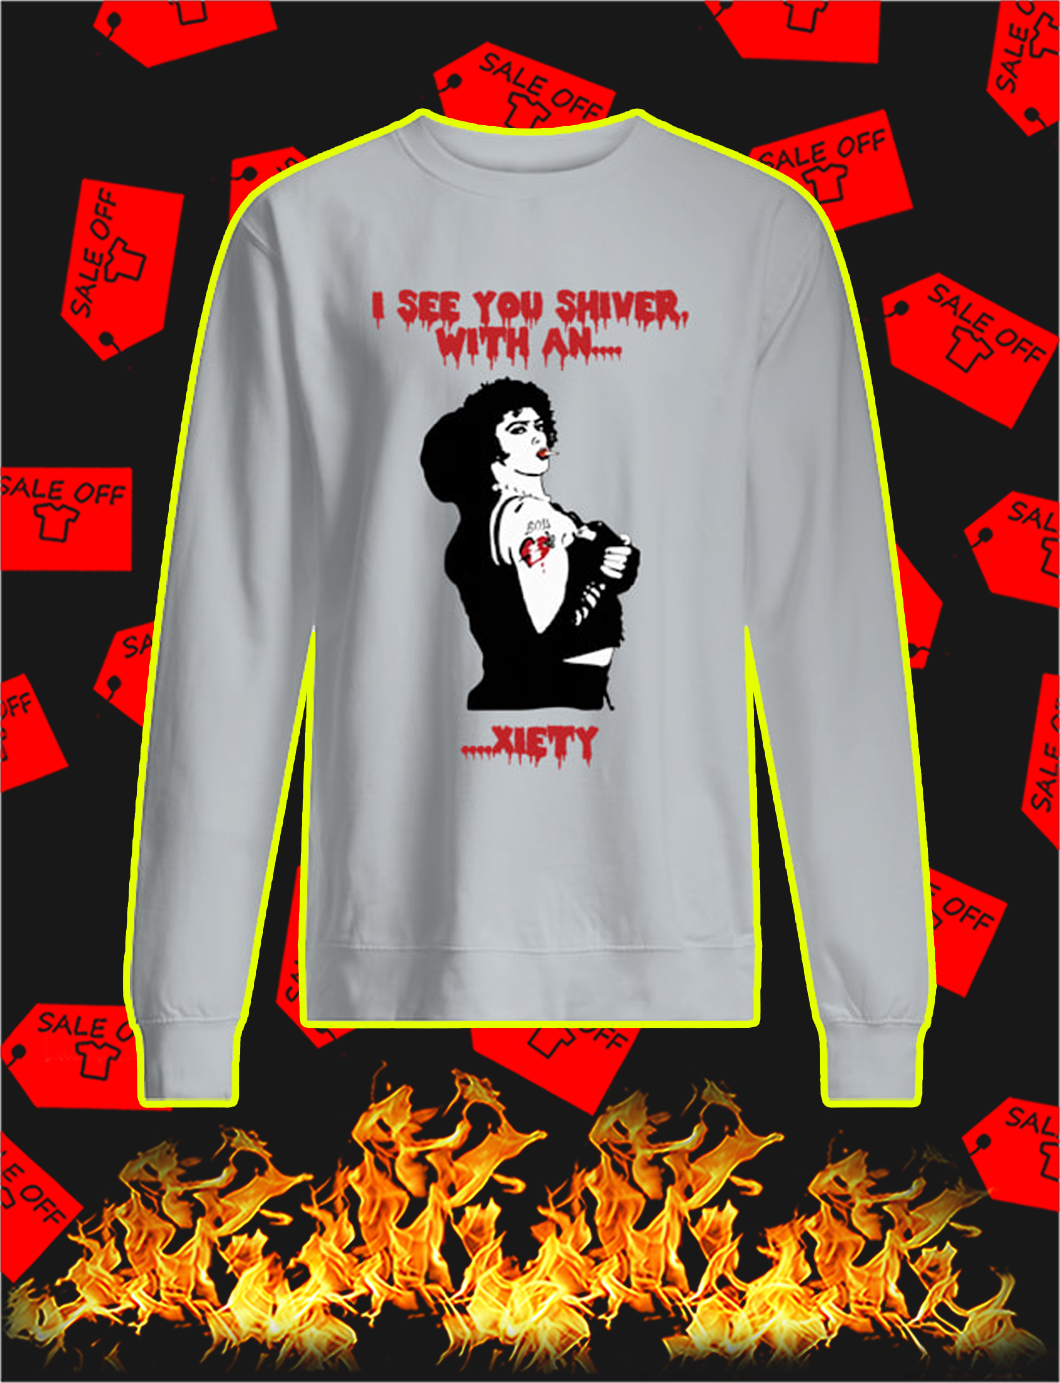 I See You Shiver With An Xiety sweatshirtI See You Shiver With An Xiety sweatshirt